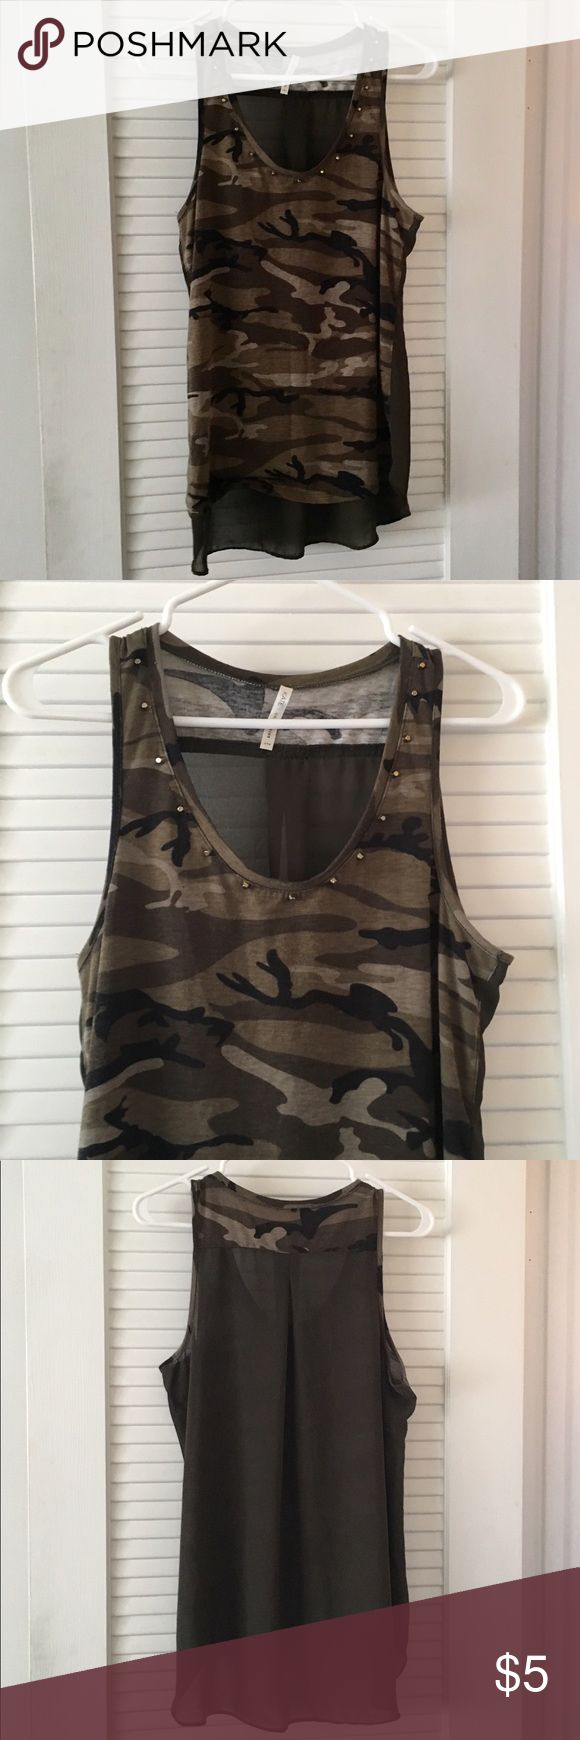 Camo tank top Camo print tank top with metal detail on the collar Tops Tank Tops